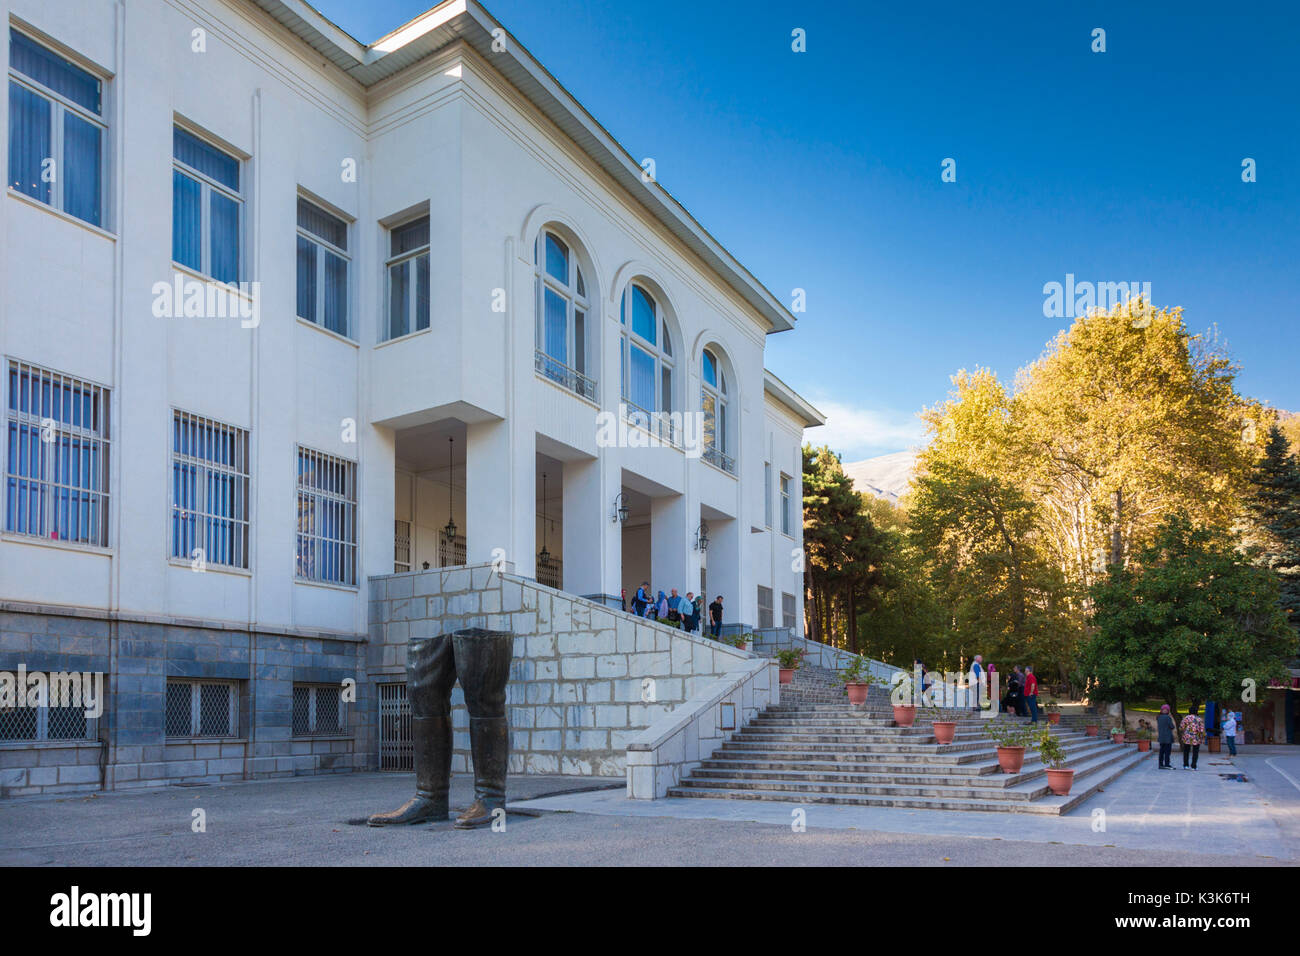 Iran, Tehran, Sa'd Abad Palace Complex, royal summer residence during the Pahlavi period, White Palace, Palace of the Nation, remnants of statue of Reza Shah damaged during the Islamic Revolution - Stock Image